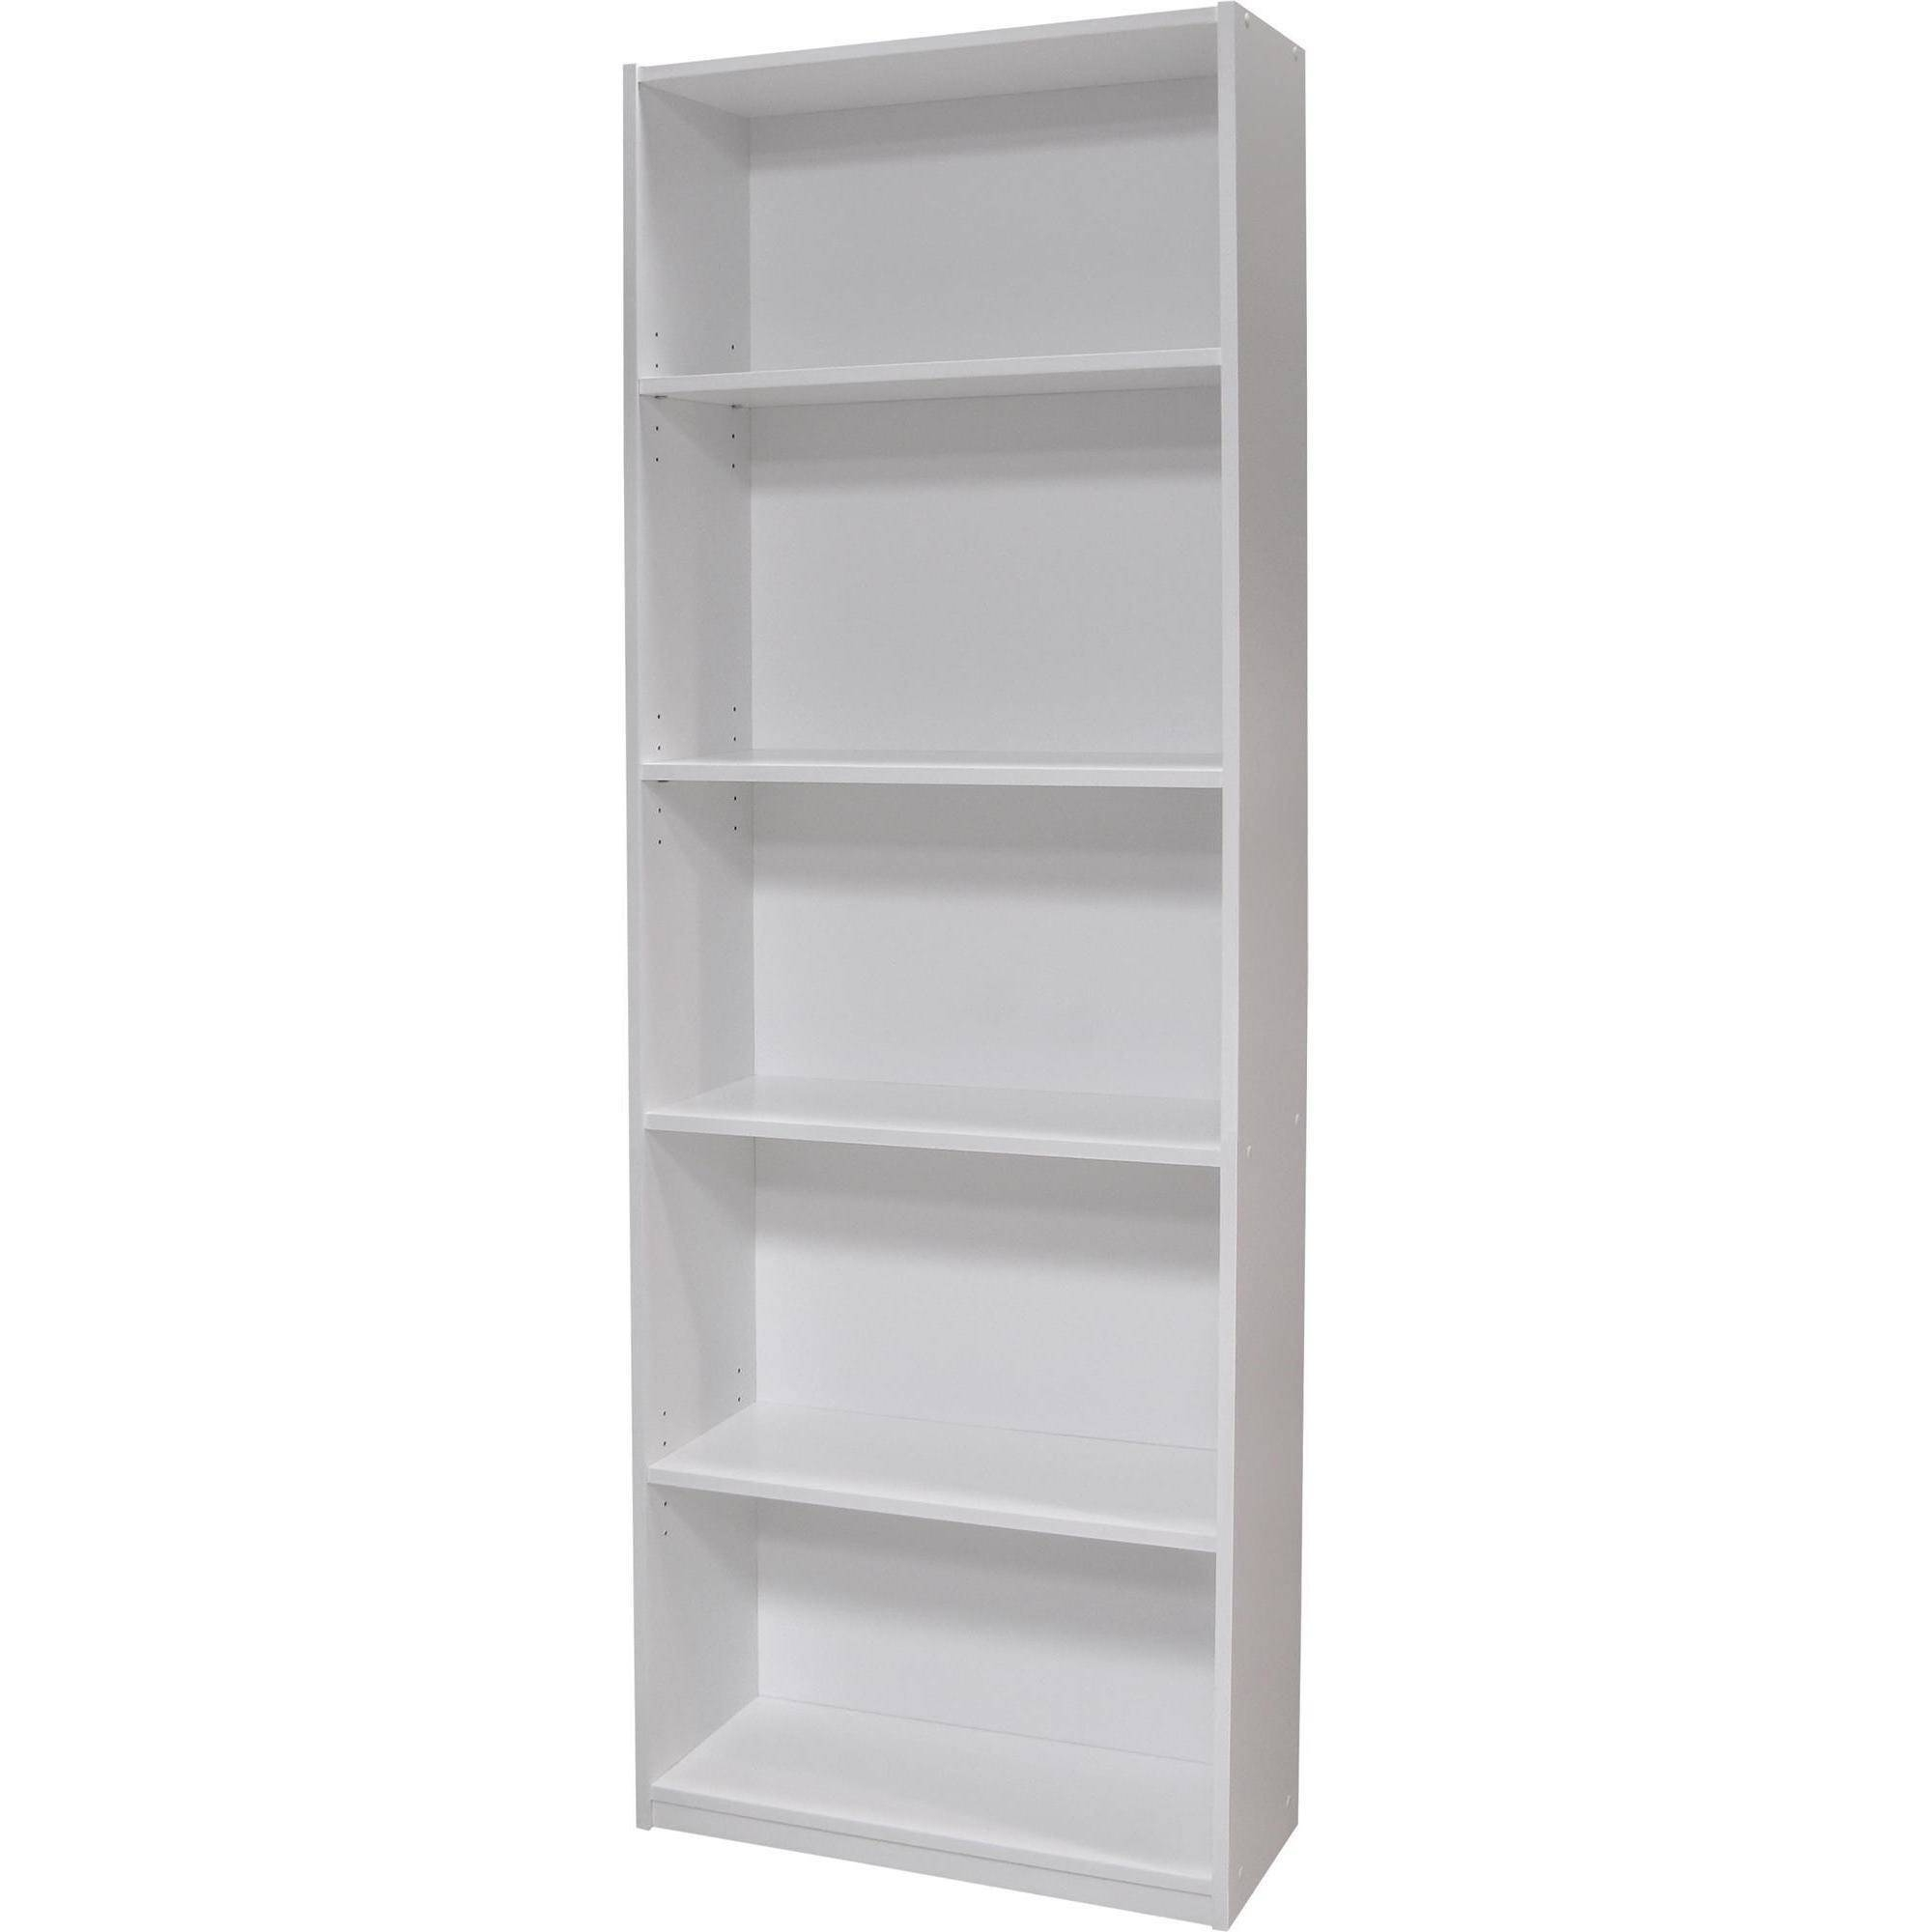 Most Popular Ameriwood 5 Shelf Bookcases, Set Of 2 (mix And Match) – Walmart In White Walmart Bookcases (View 8 of 15)